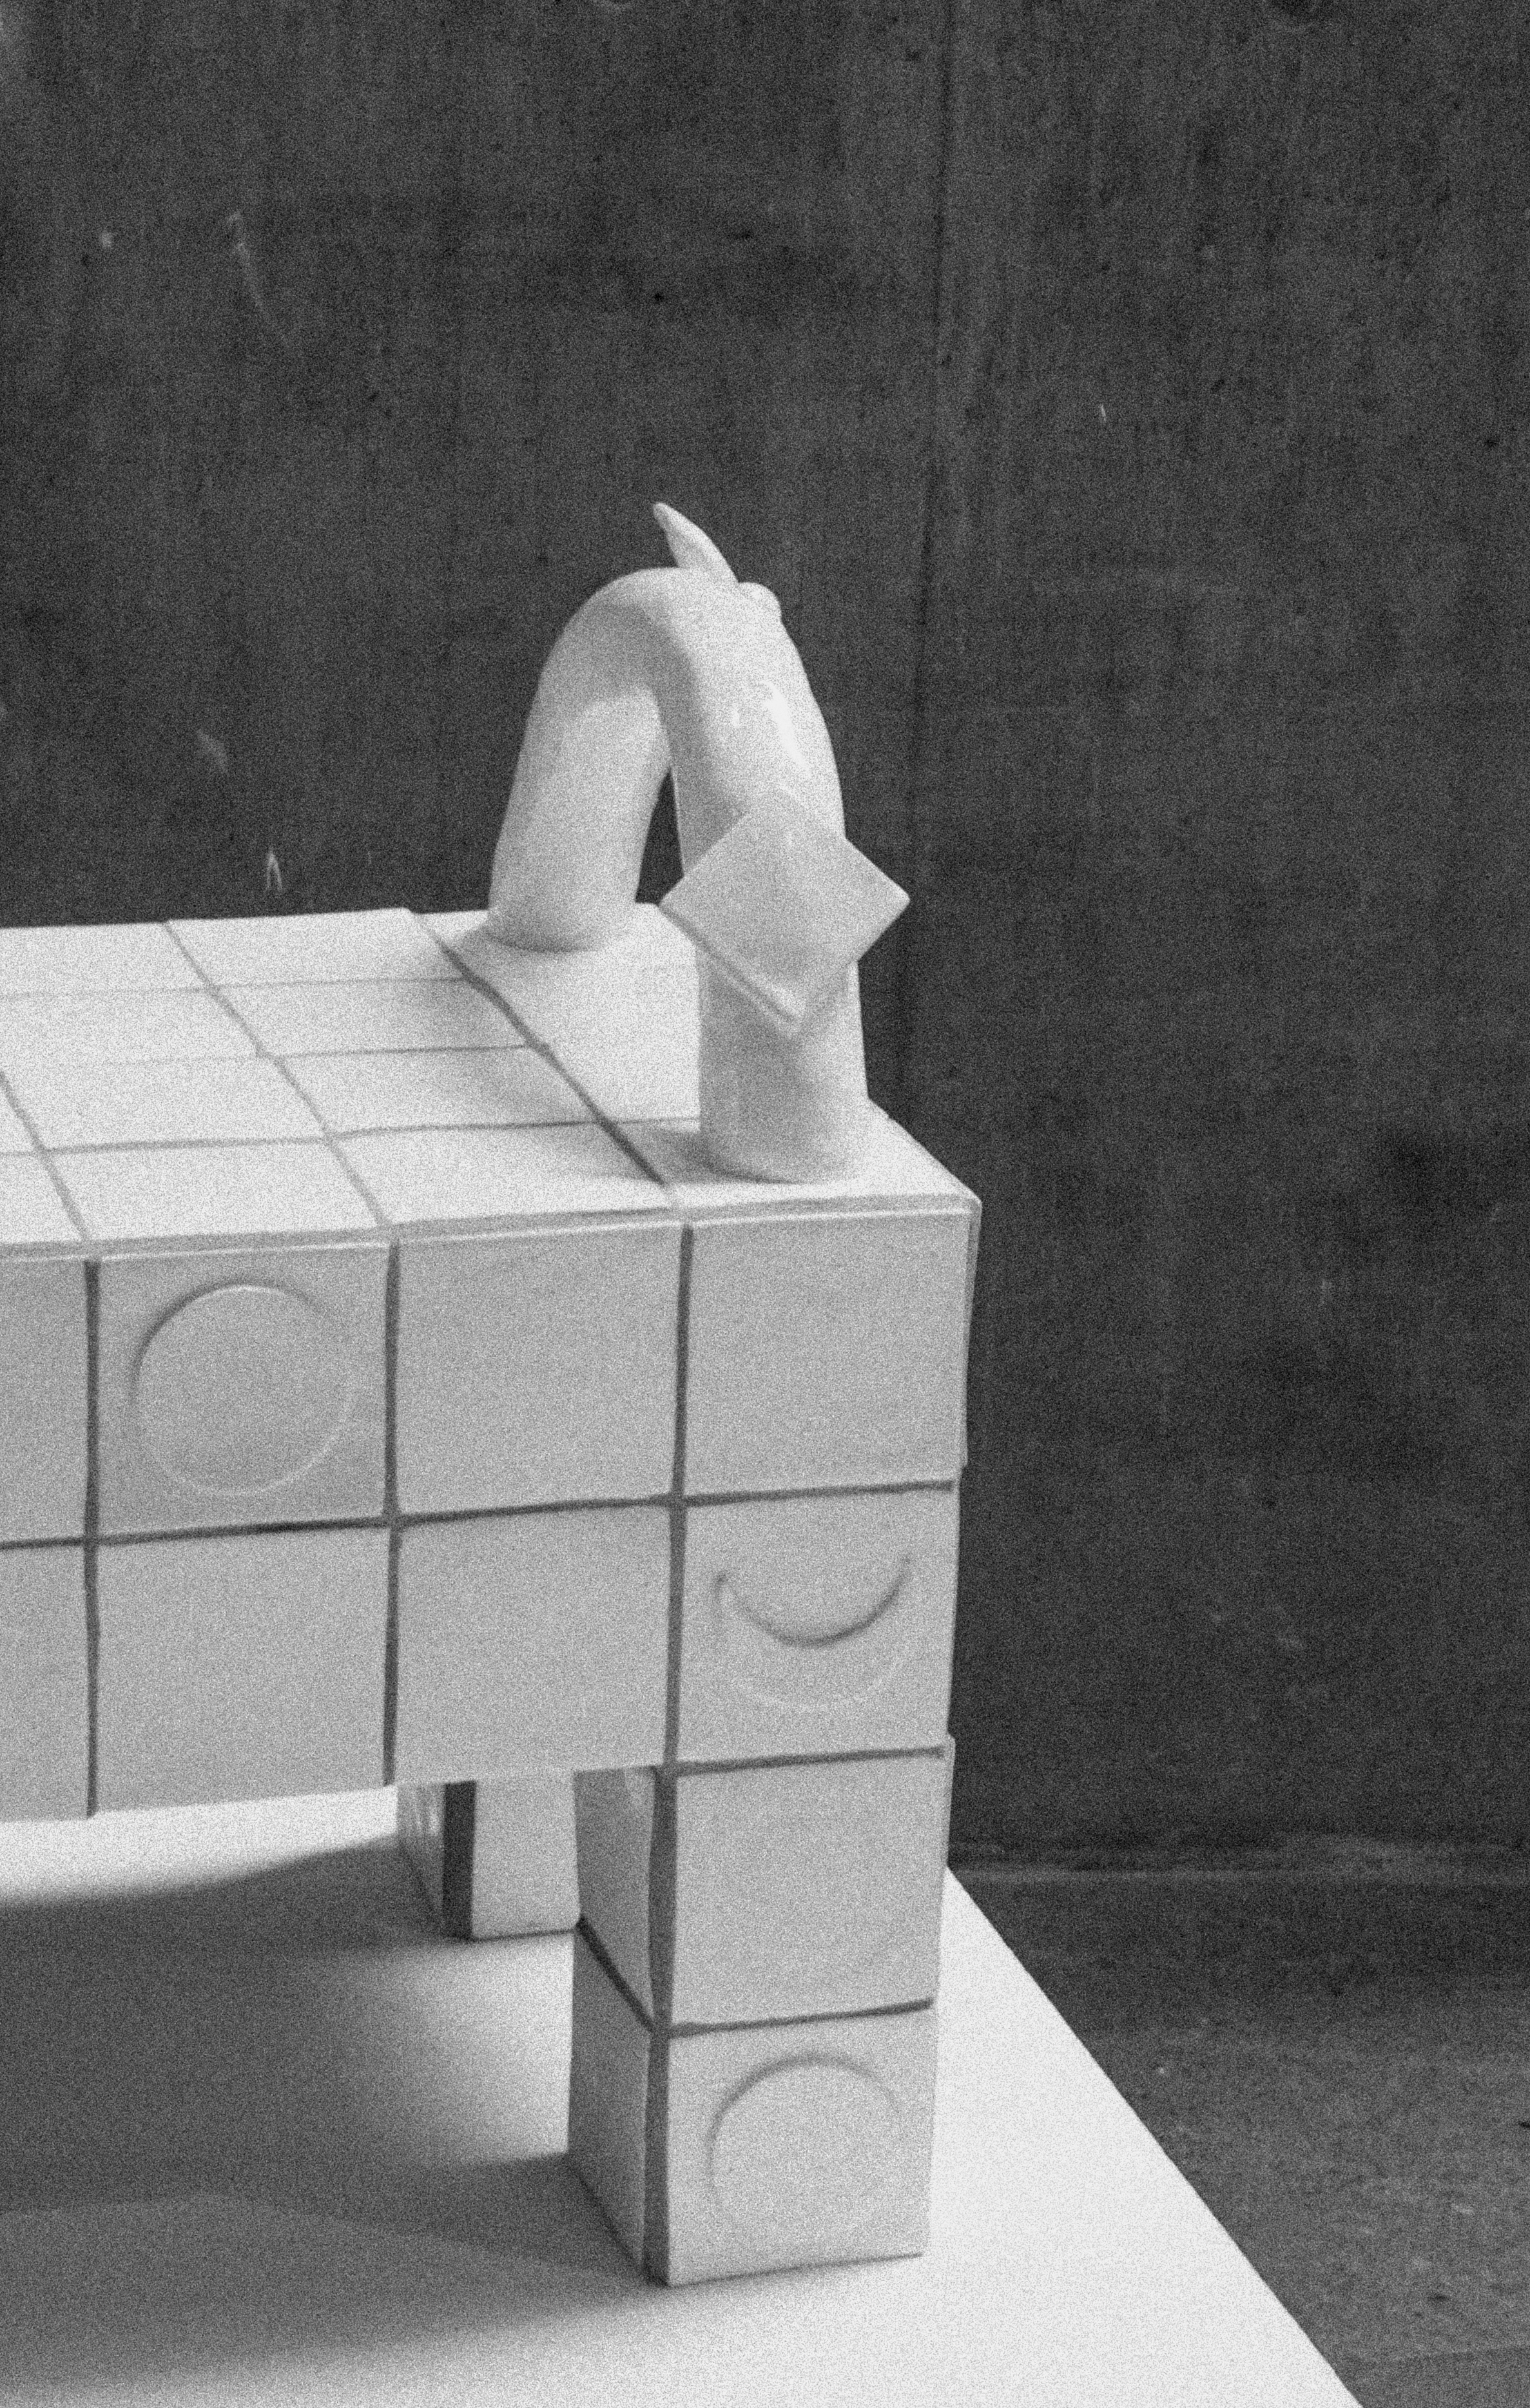 A set of surrealist and sculptural furniture, in hand sculpted ceramic tiles. One-off chair, bench, side table/tool, and coffee table.